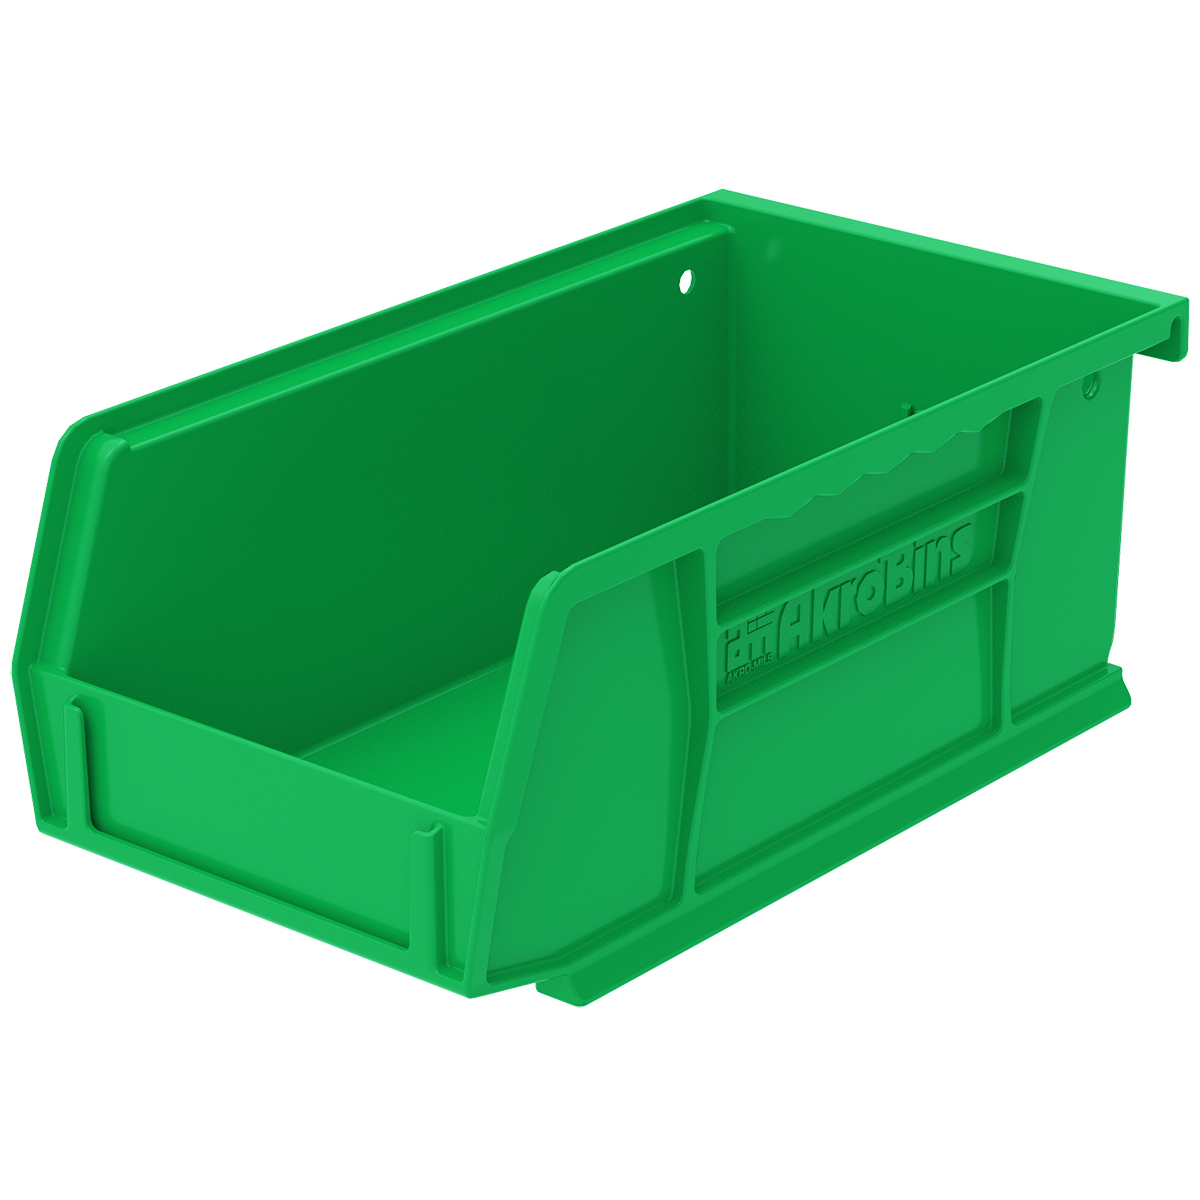 AkroBin 7-3/8 x 4-1/8 x 3, Green (30220GREEN).  This item sold in carton quantities of 24.